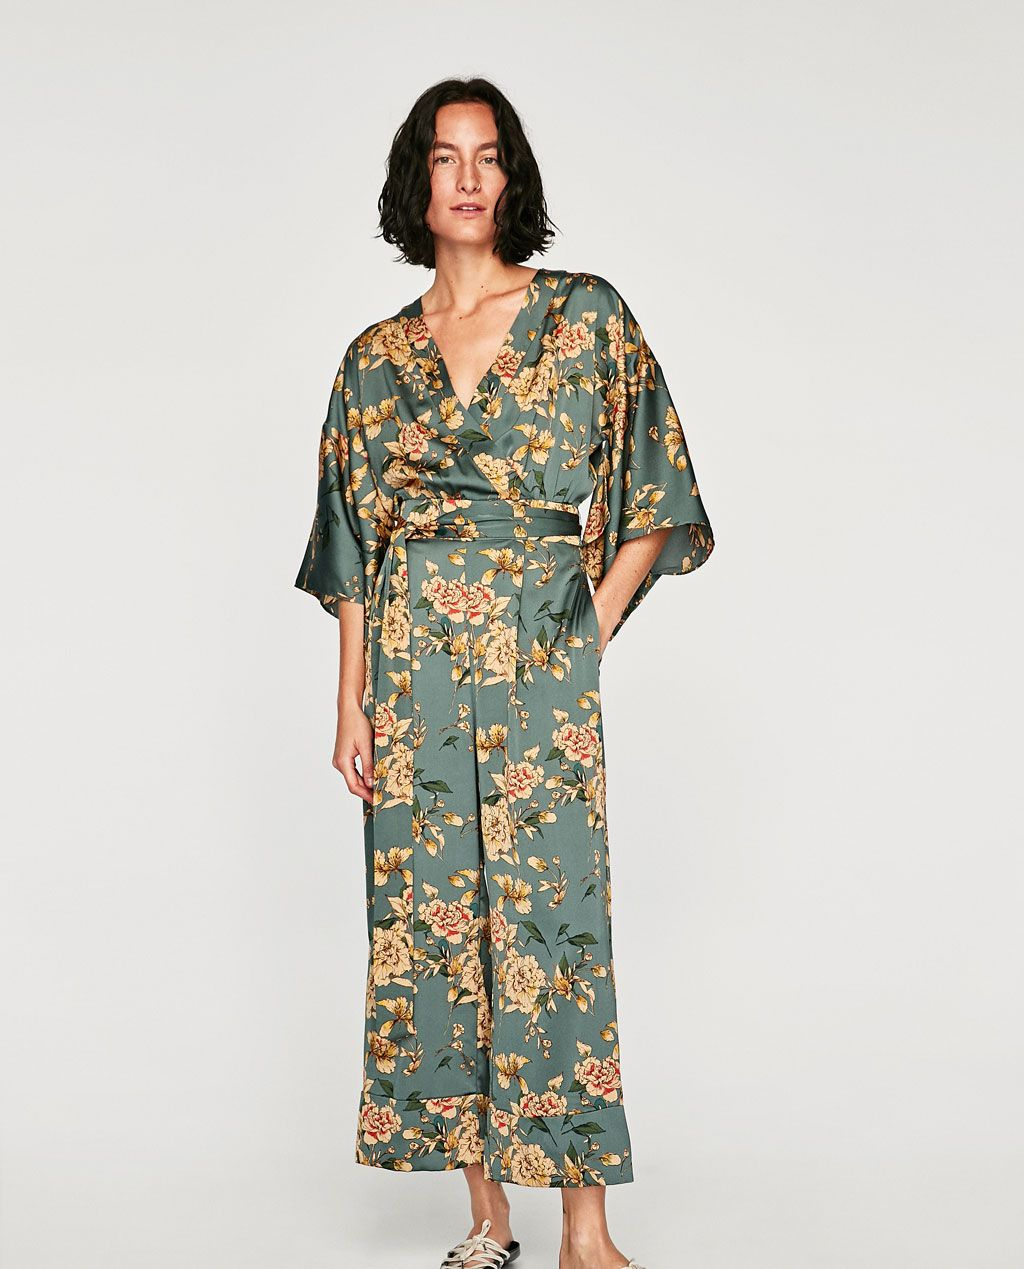 61be86e6b40 ZARA - COLLECTION AW 17 - PRINTED KIMONO JUMPSUIT